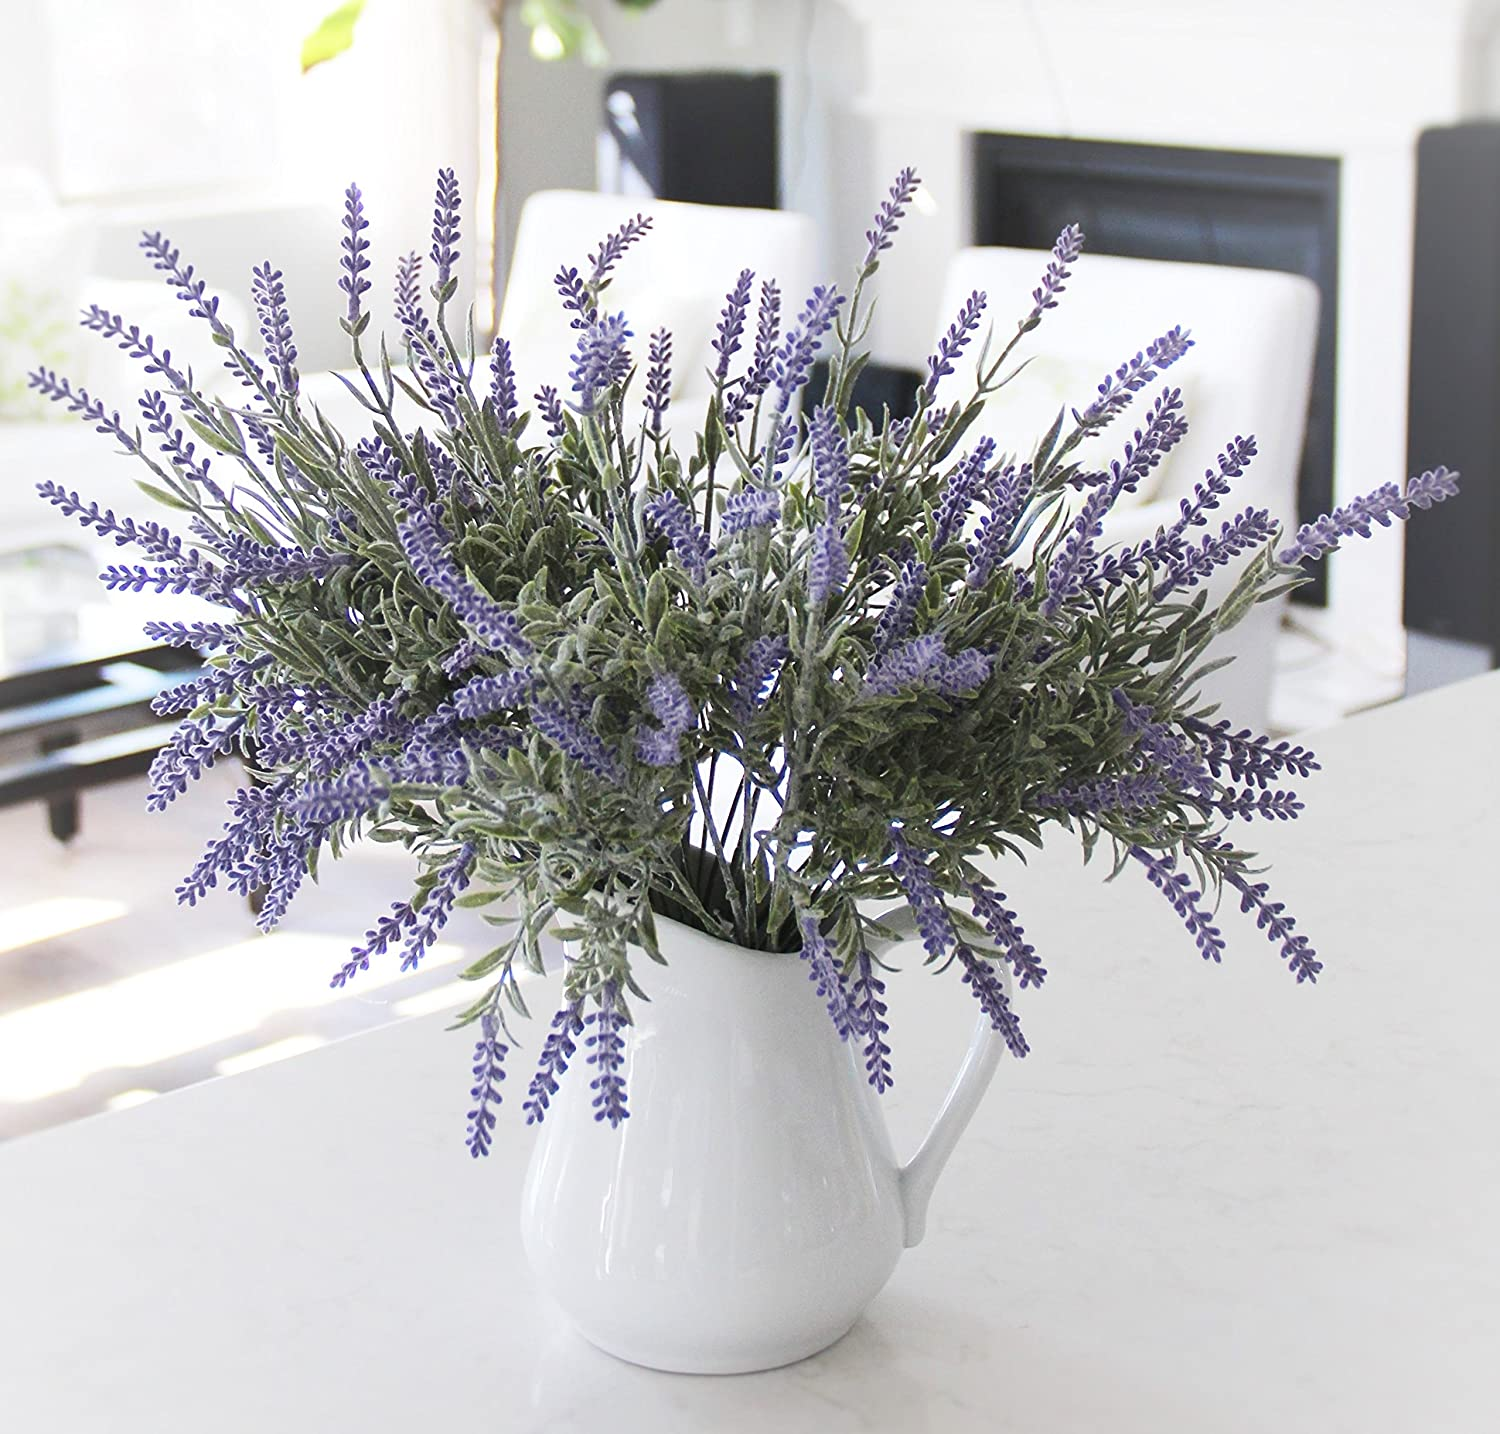 Amazon 8 bundle artificial flower purple lavender bouquet amazon 8 bundle artificial flower purple lavender bouquet with green leaves for home party decorations home kitchen reviewsmspy